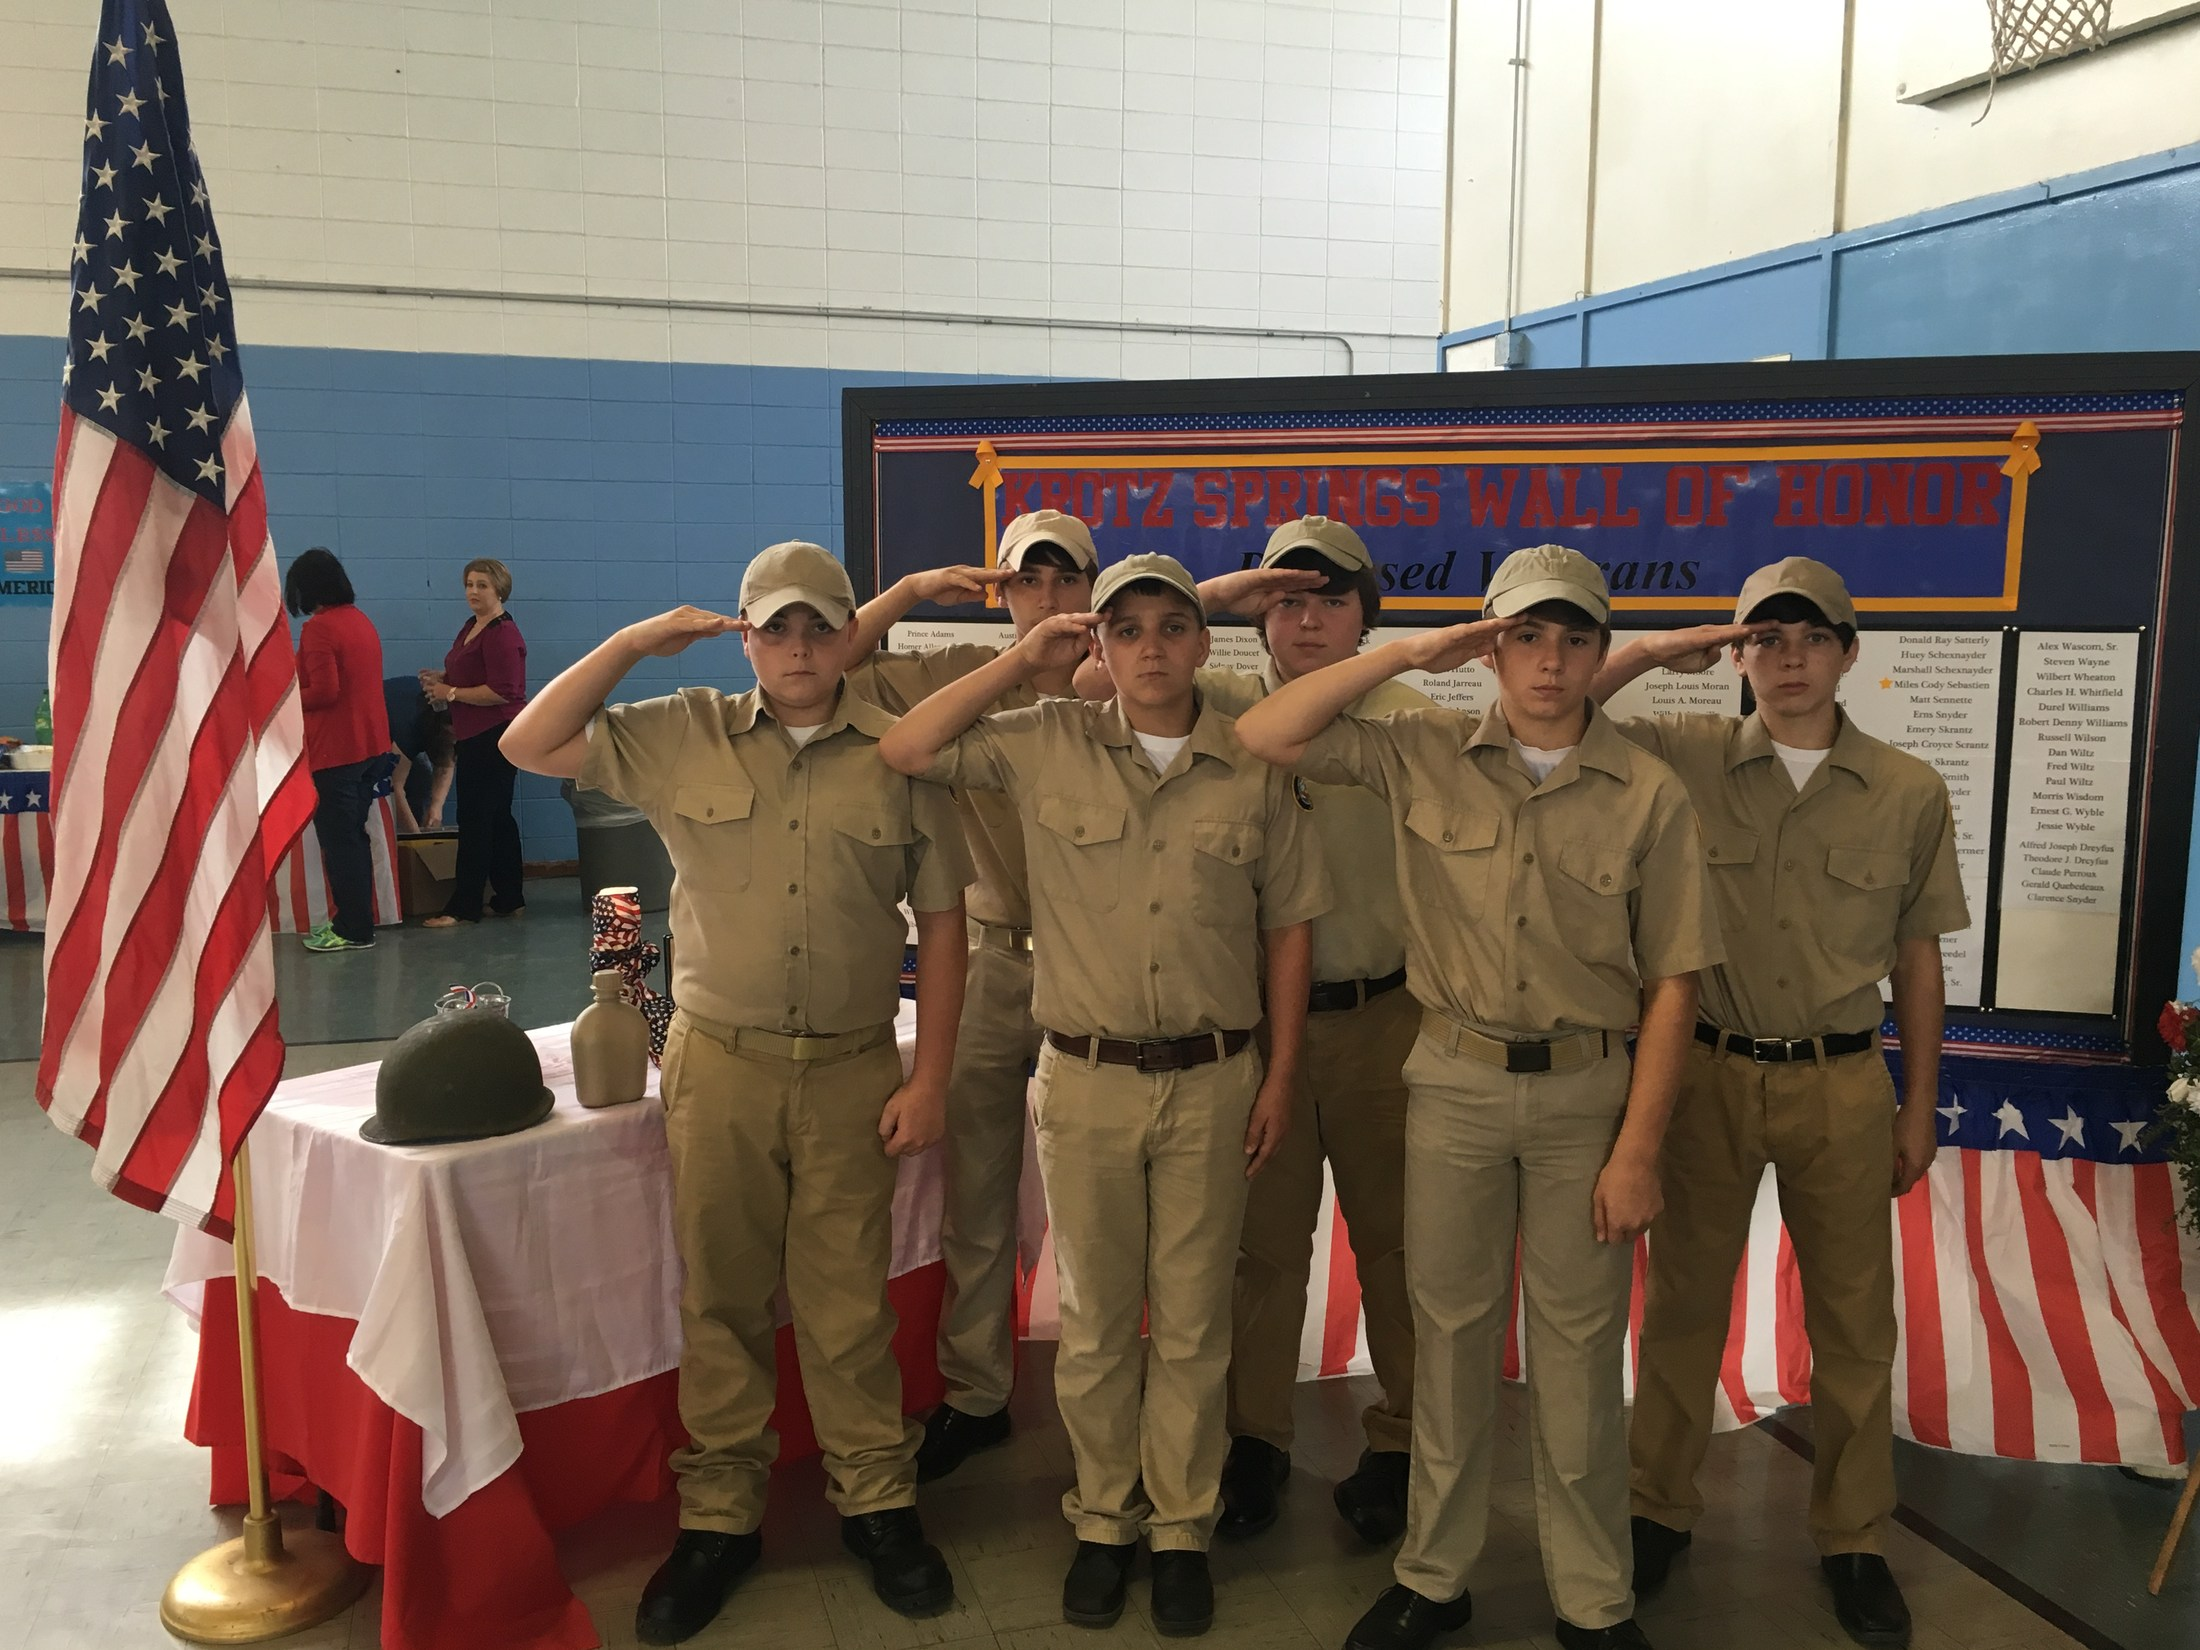 Group pic of saluting Jr. ROTC cadets